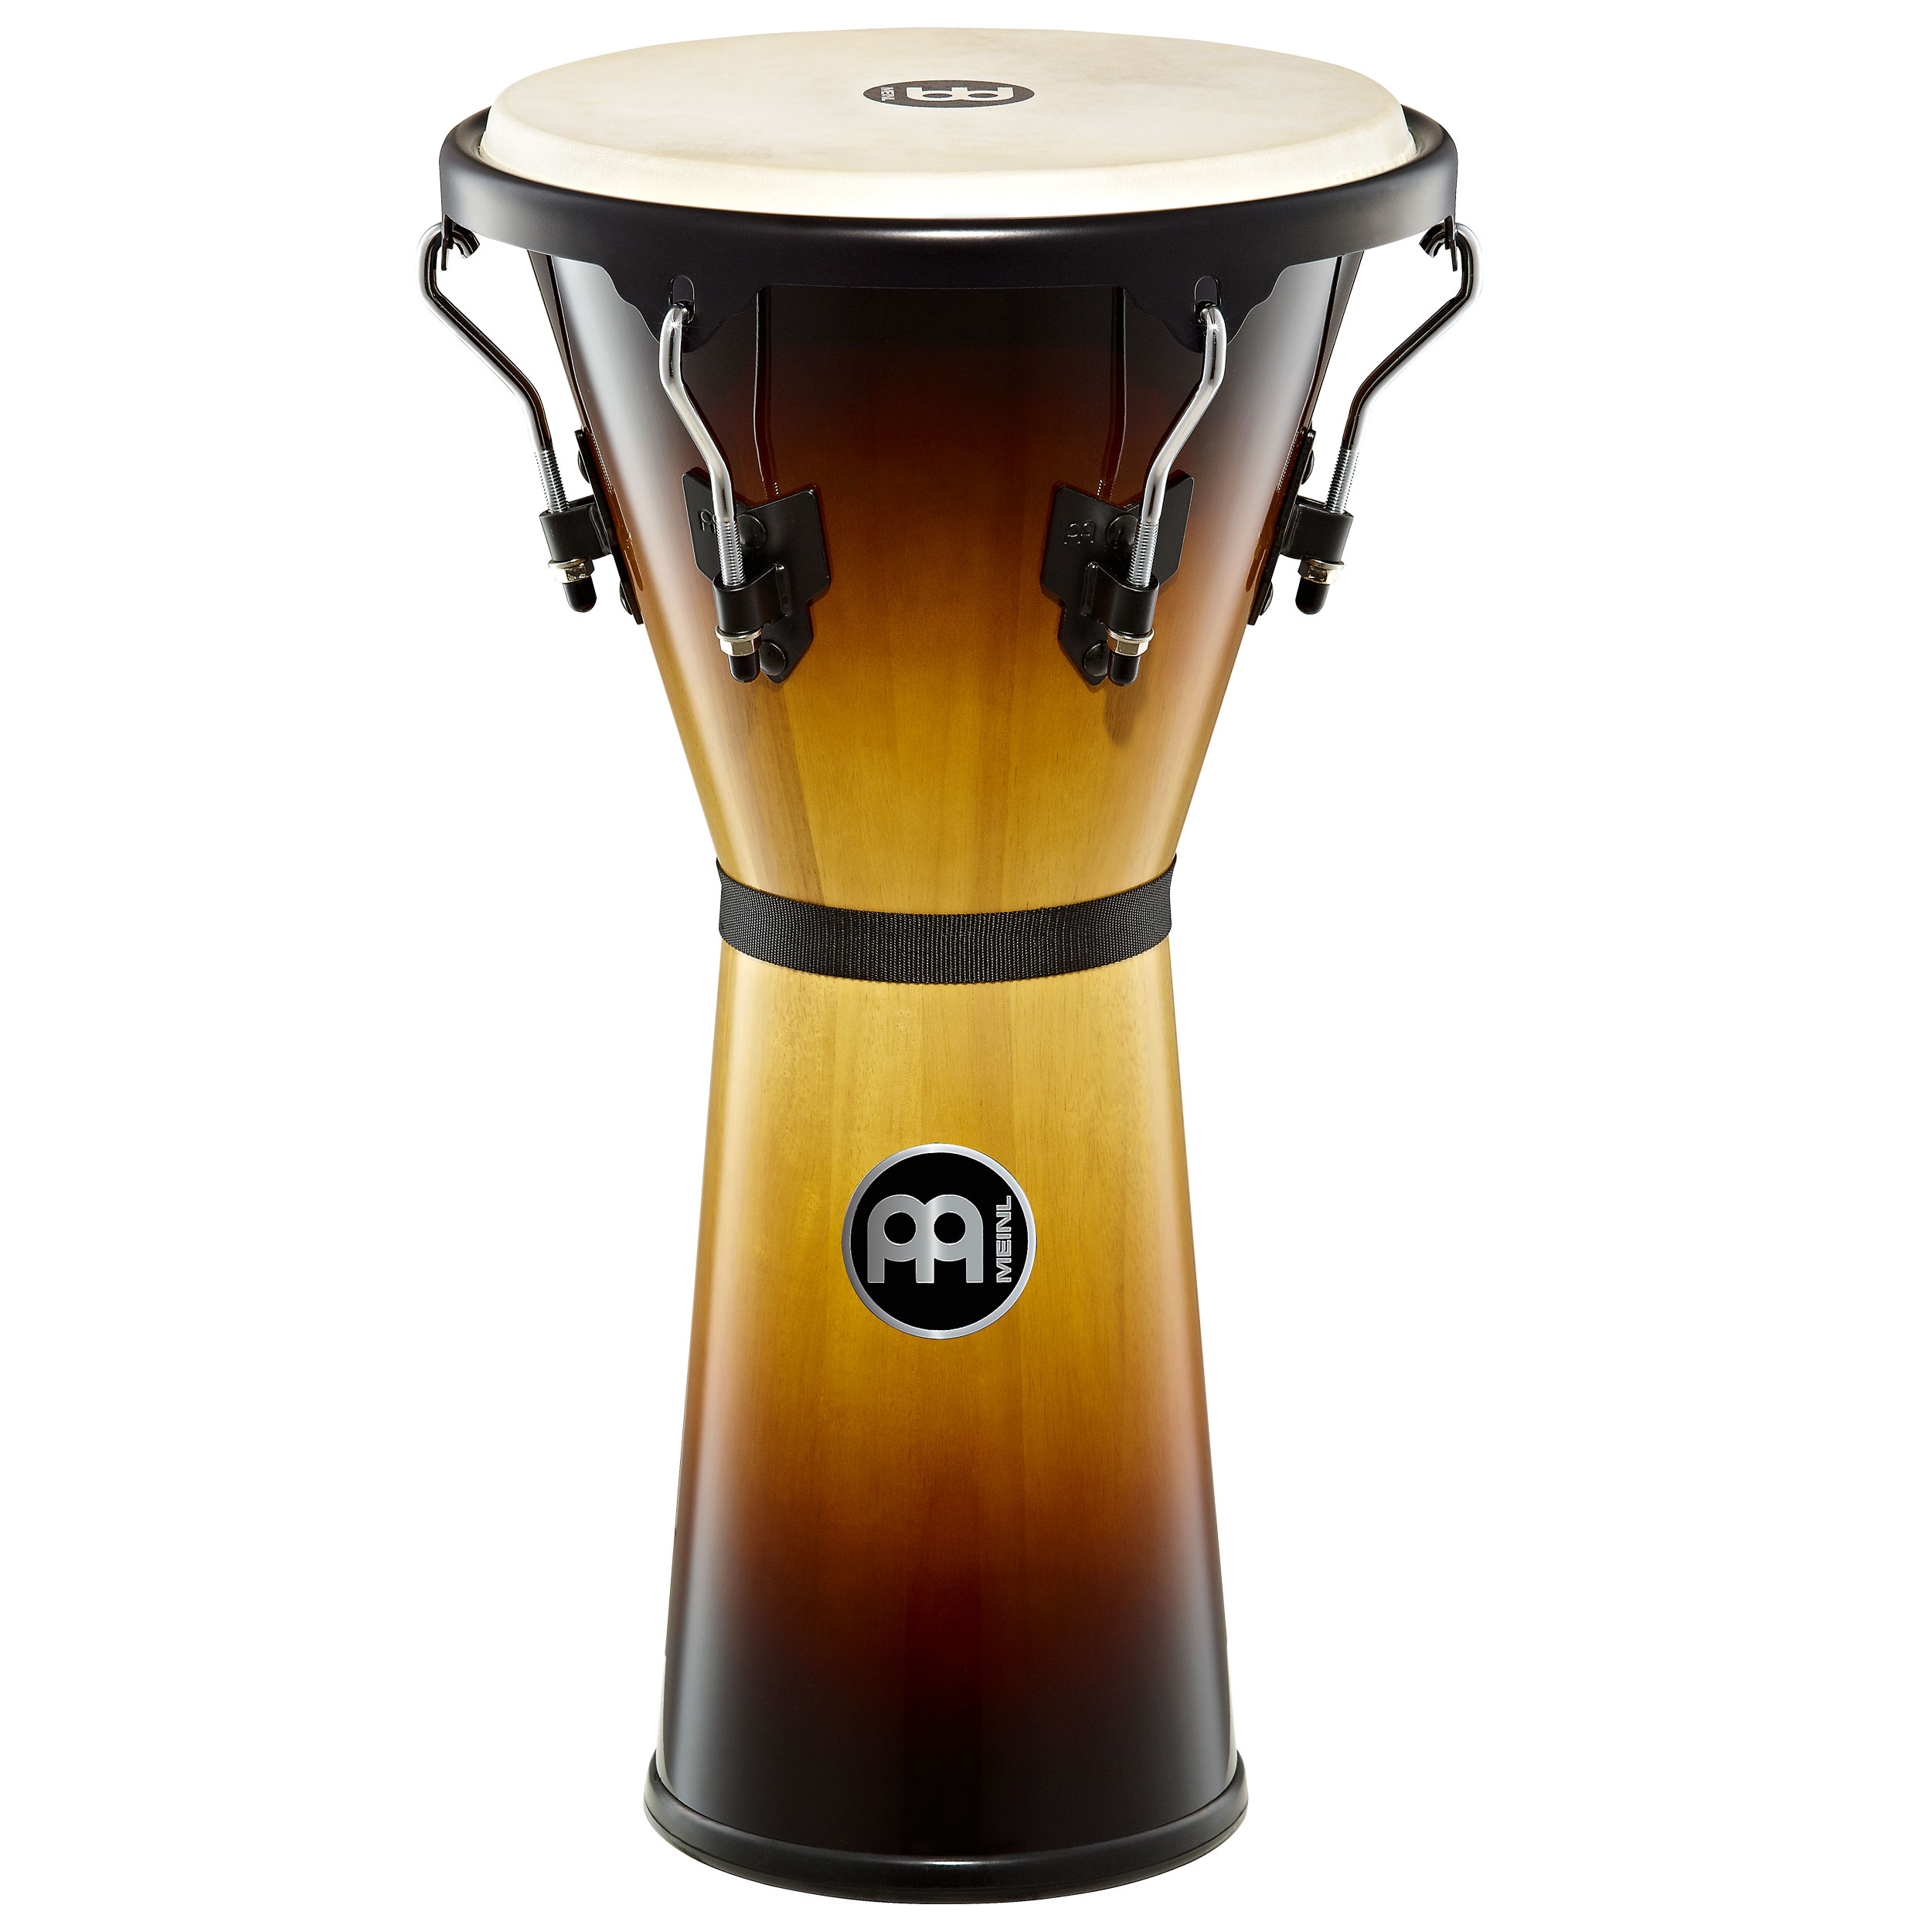 "Meinl 12 1/2"" Headliner Series Wood Djembe in Vintage Sunburst Finish"